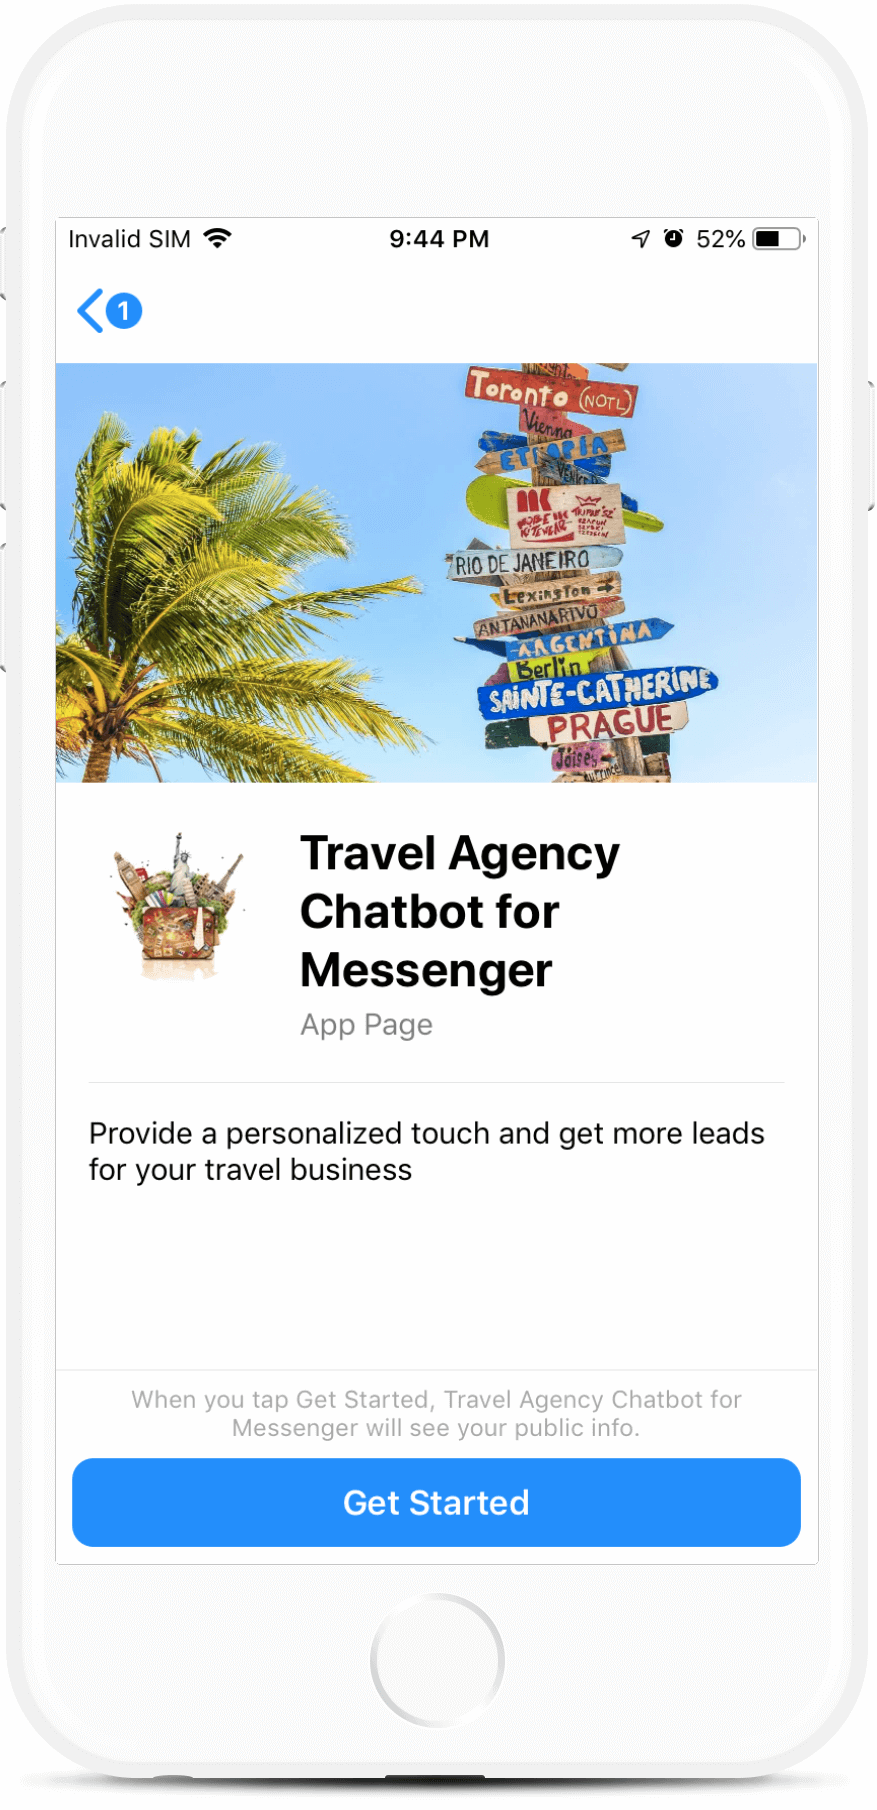 Travel Agency Chatbot for Messenger